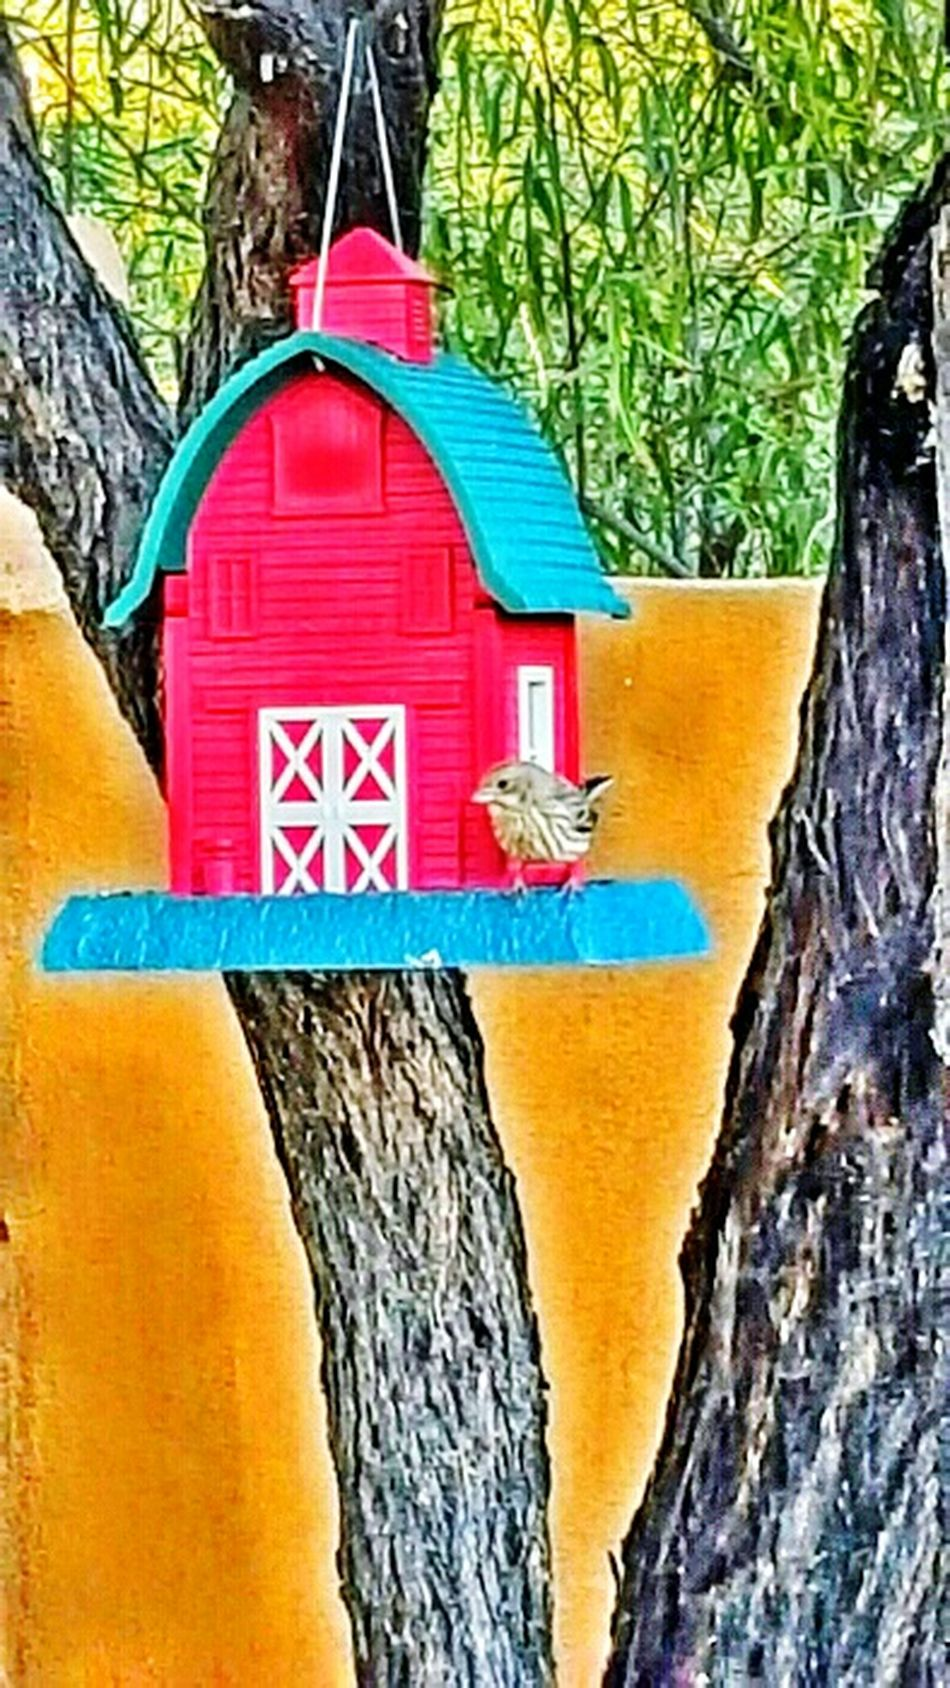 Hello World Moments Of Life Bird Photography Feeding The Birds Enjoying Life Aboveandbeyond Tree Branches Trees Collection Animallovers Nature_perfection Back Home Lotsoffun Birdwatching EyeEm Nature Lover Eyeemspring Sitting Outside Looking At Trees. Arizonawren